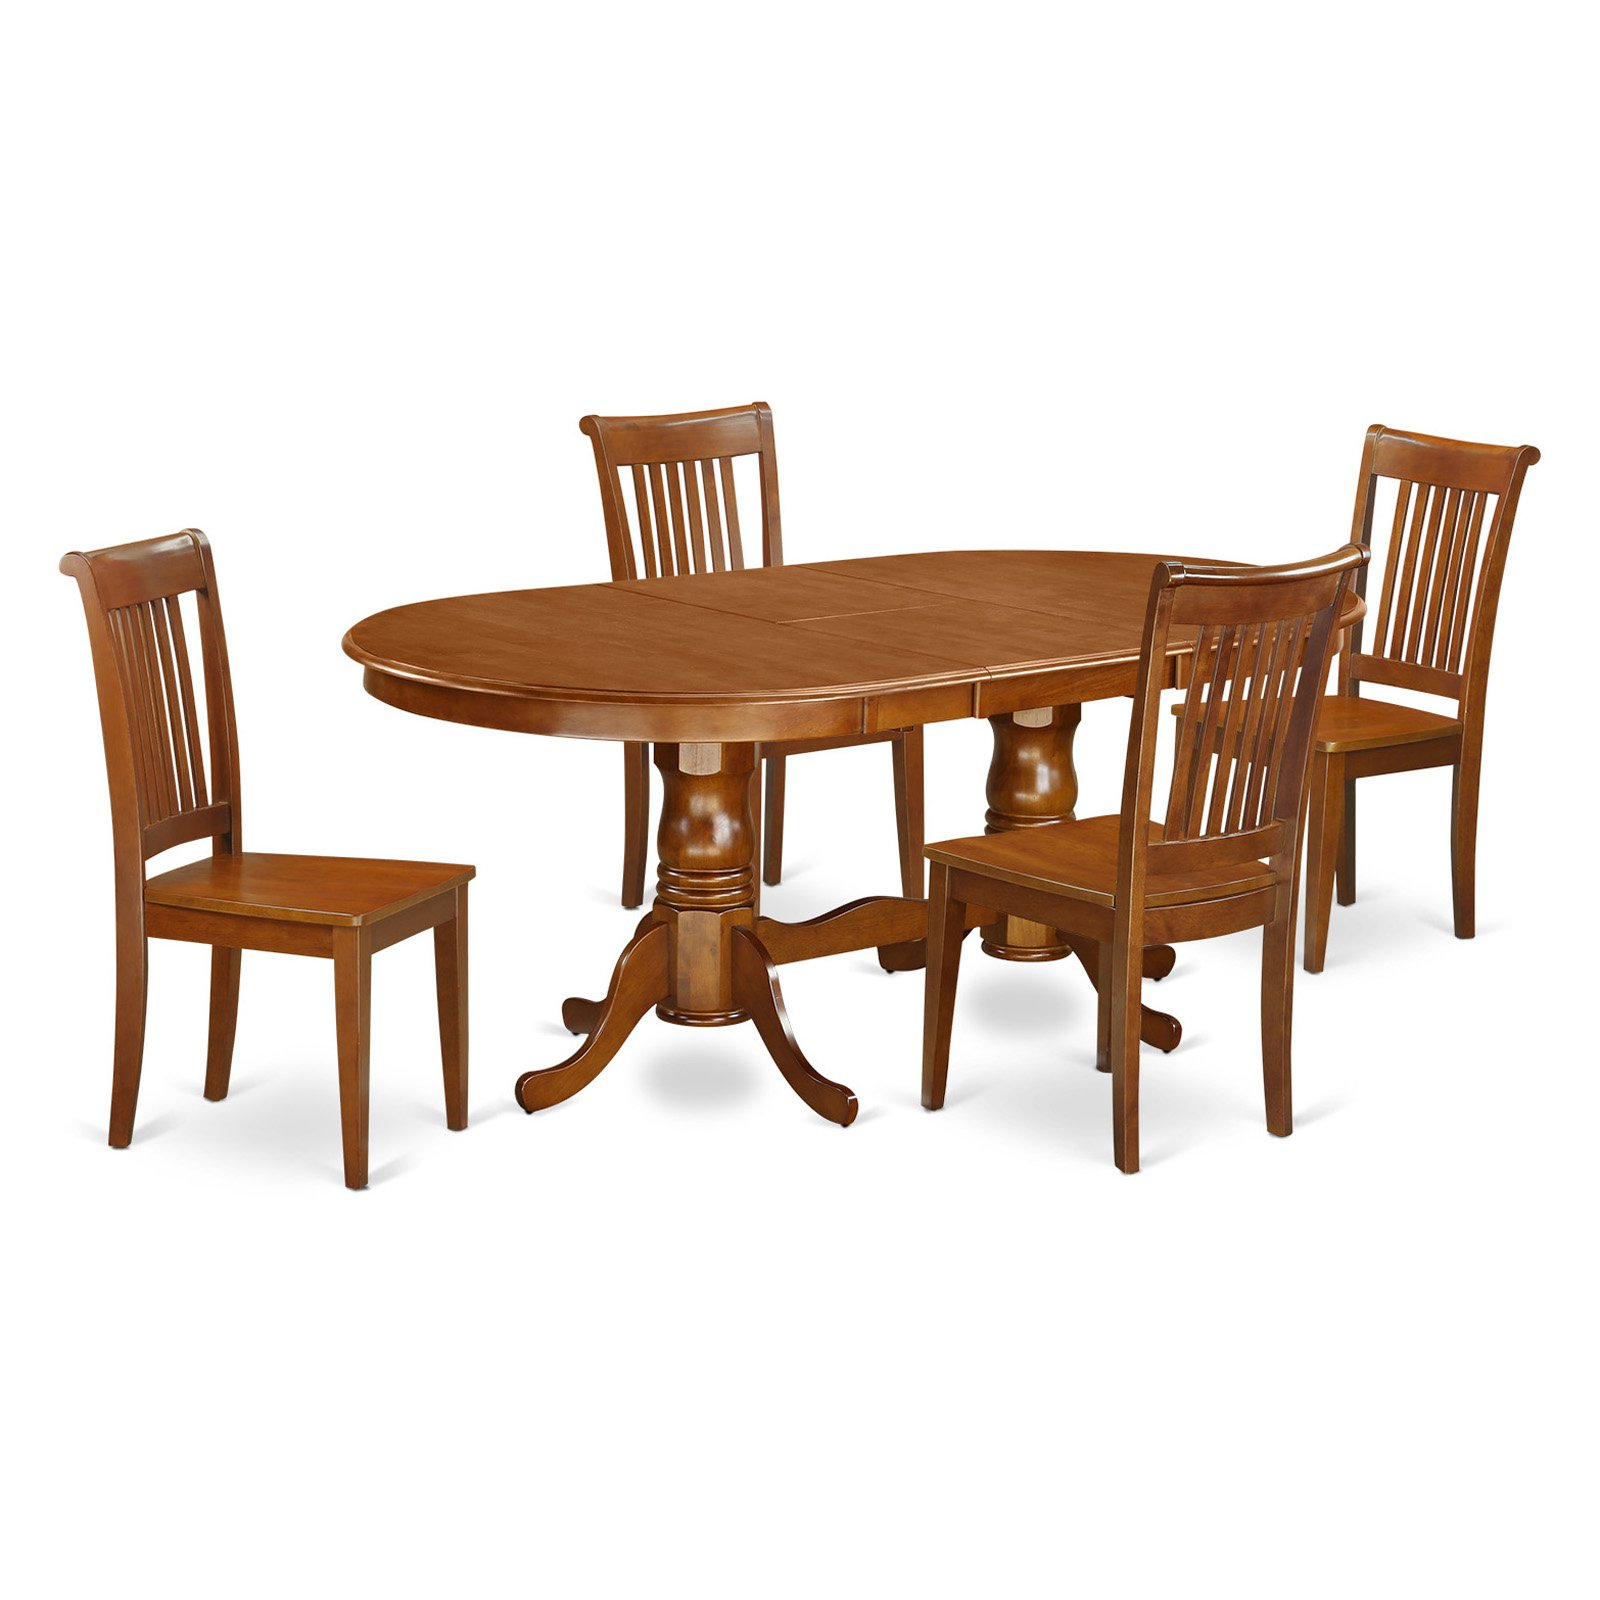 East West Furniture Plainville 5 Piece Windsor Dining Table Set